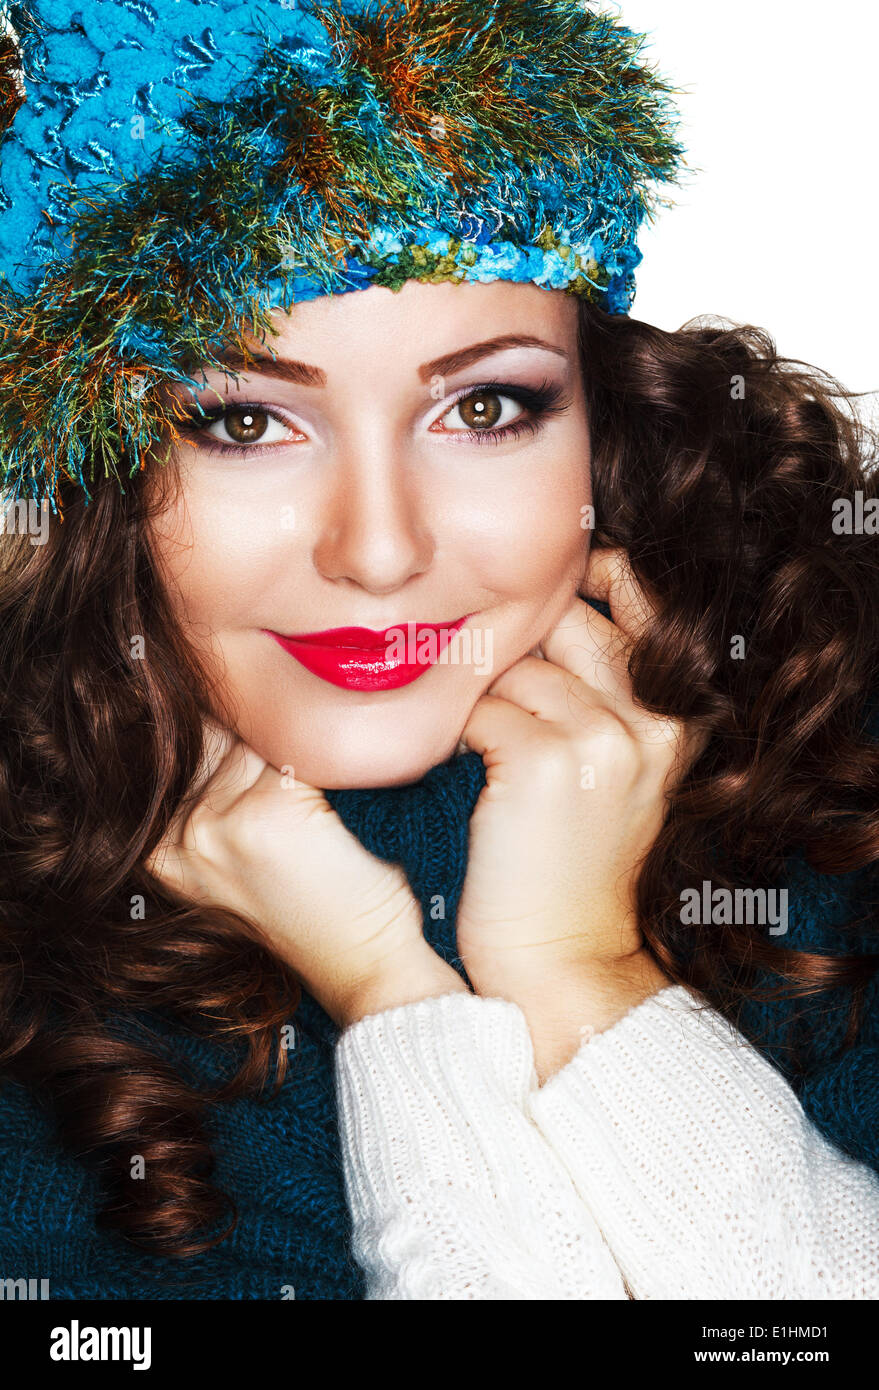 Happy Woman in Blue Knitted Cap and Knitwear - Warm Jersey Stock Photo